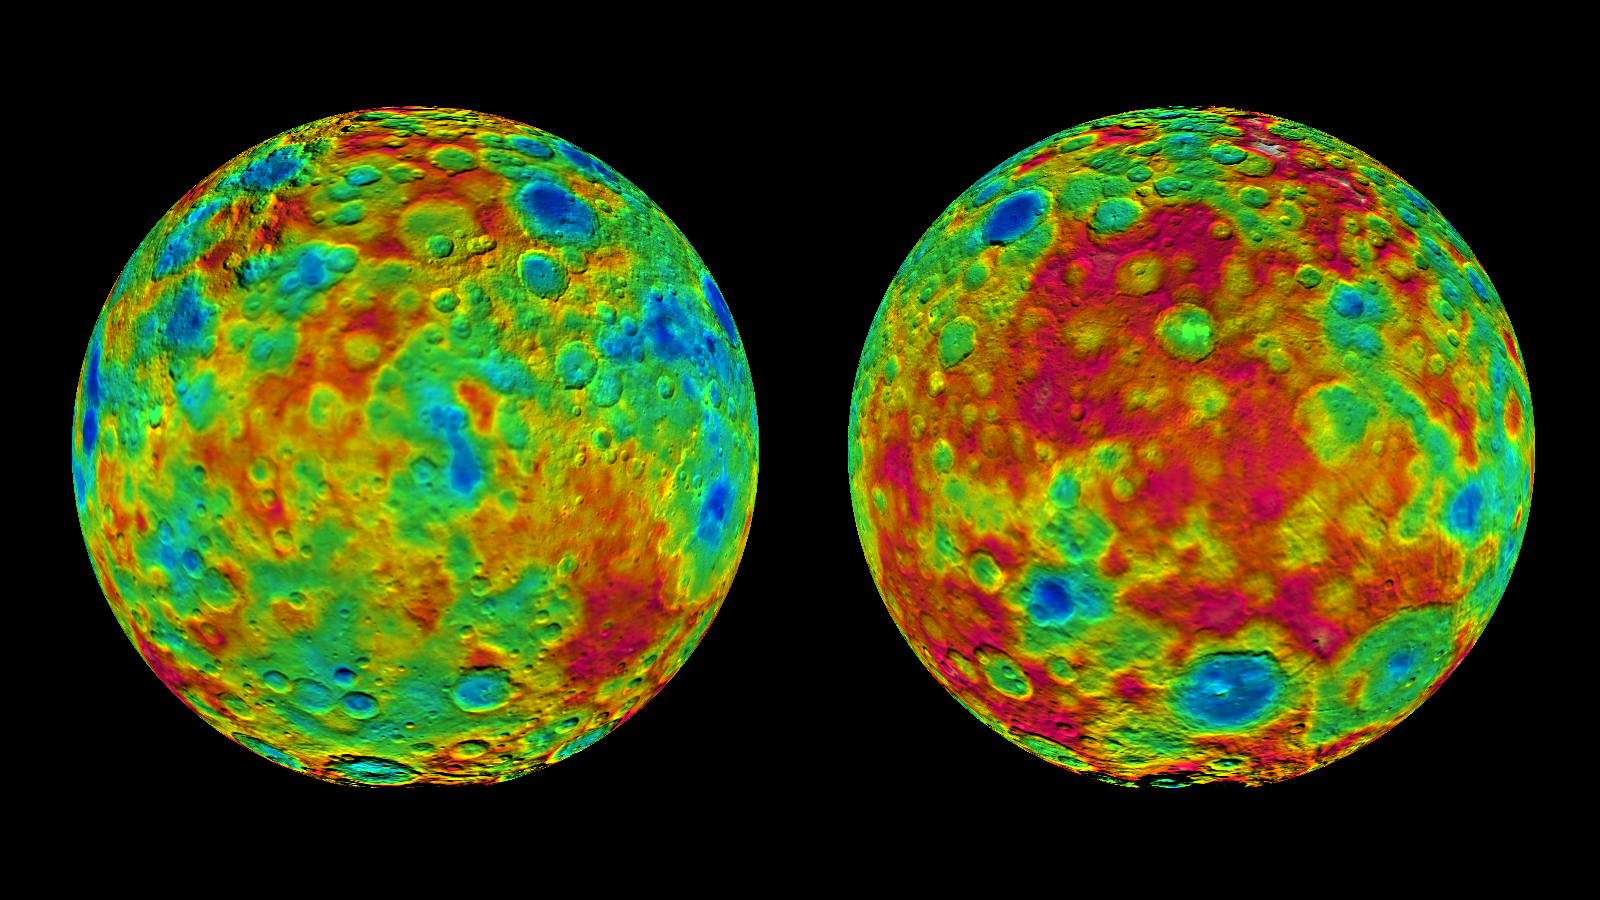 Topographic Maps Of Ceres East And West Hemispheres NASA - Nasa topographic map